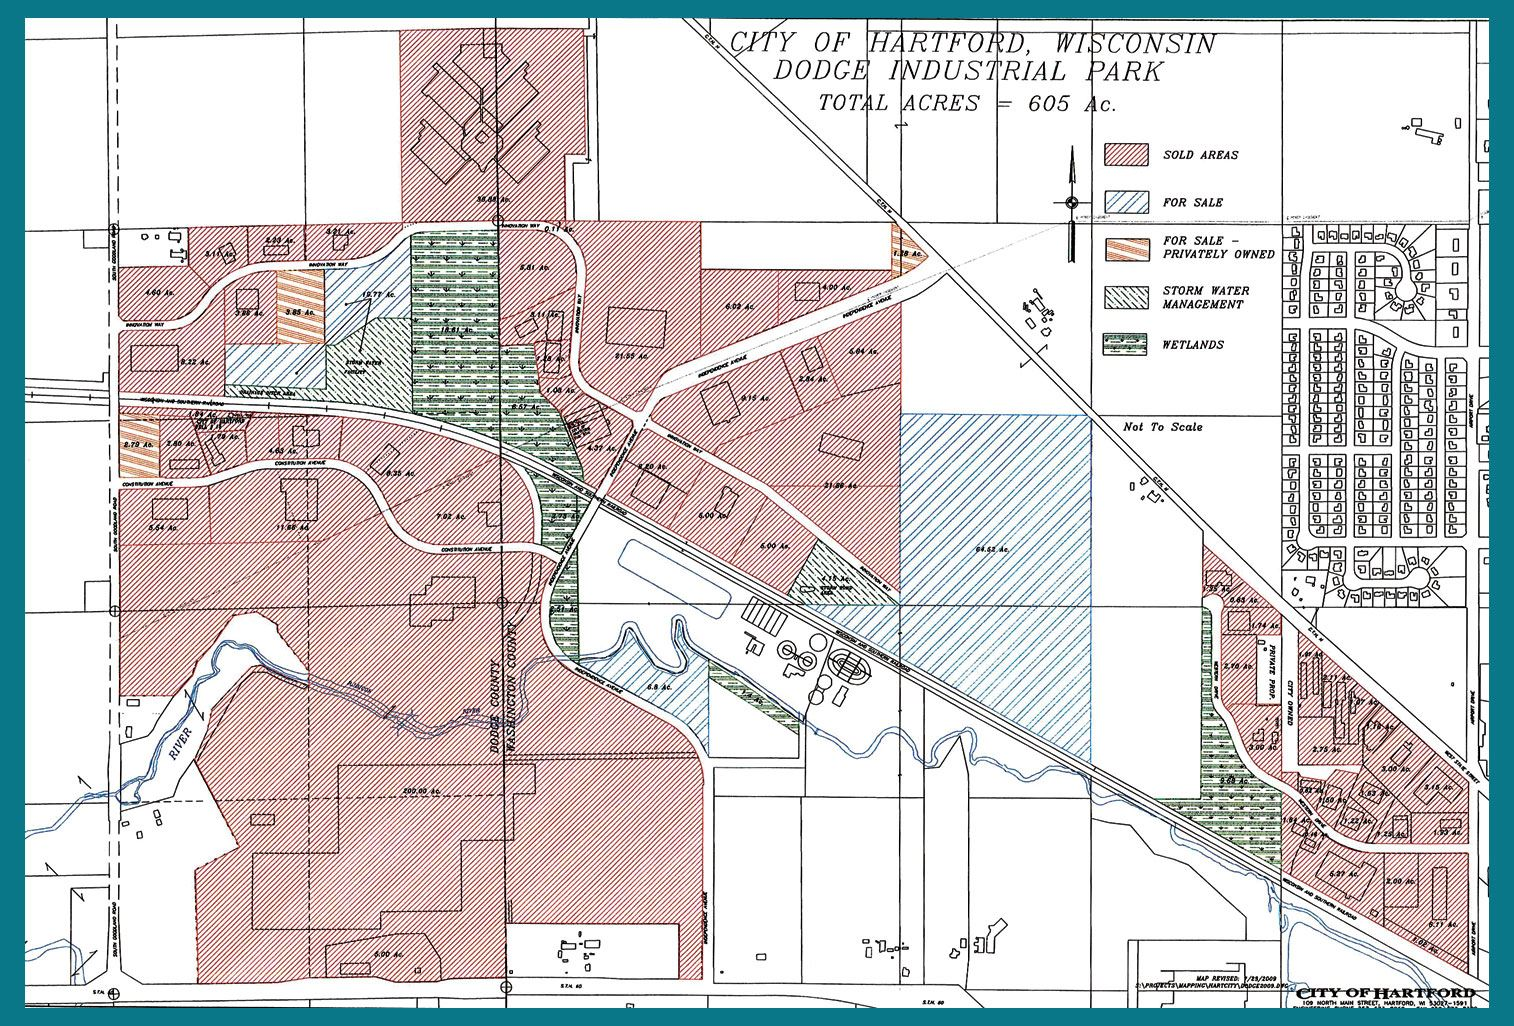 City of Hartford Wisconsin Dodge Industrial Park Map